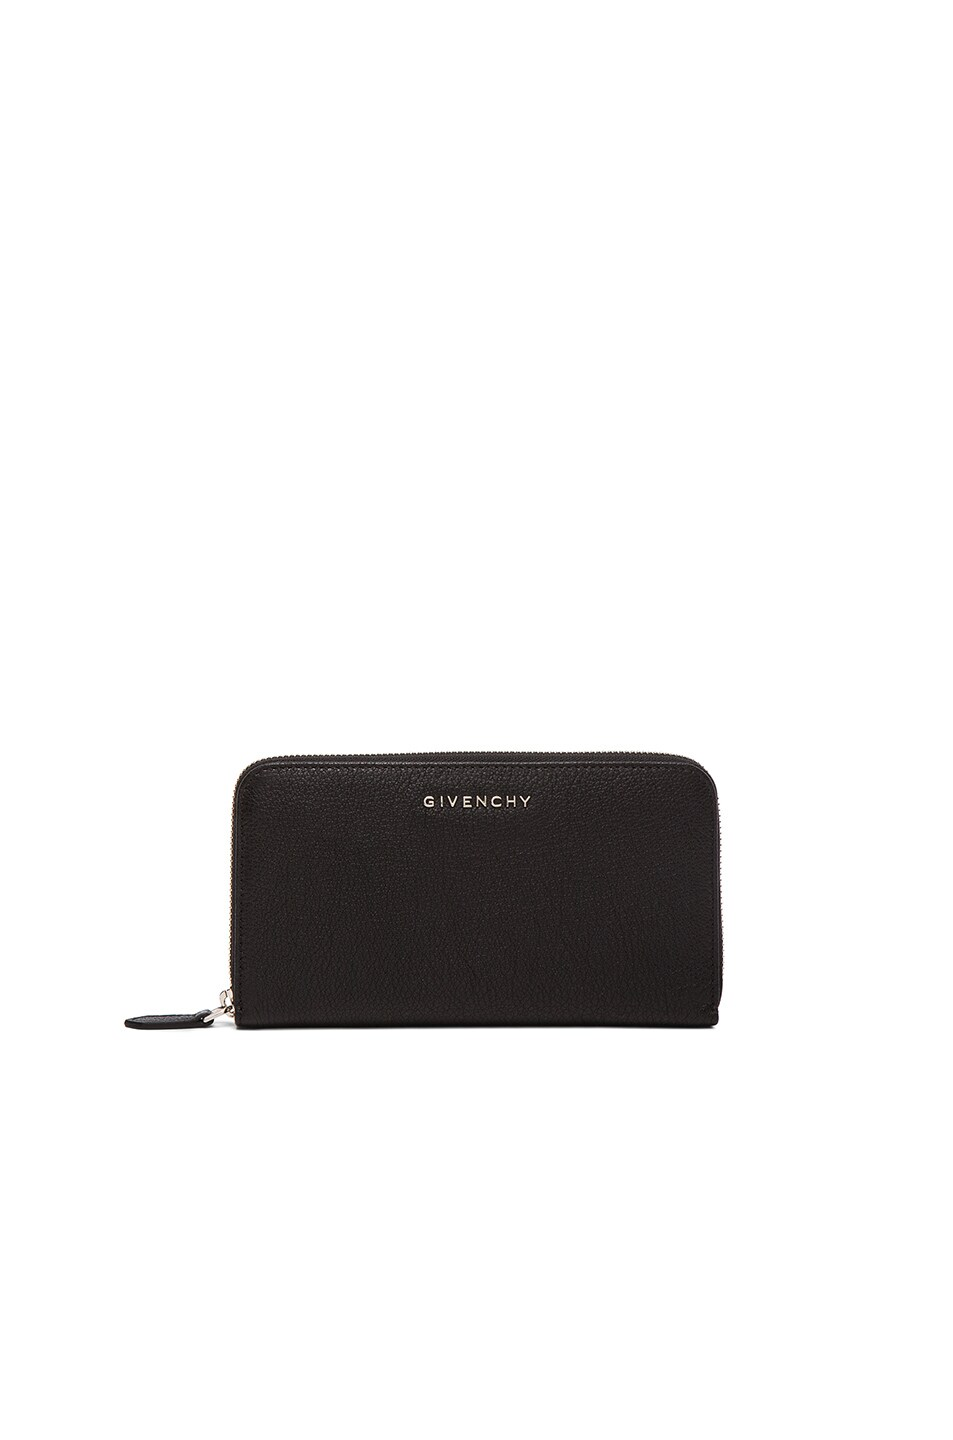 Image 1 of GIVENCHY Pandora Long Zip Around Wallet in Black